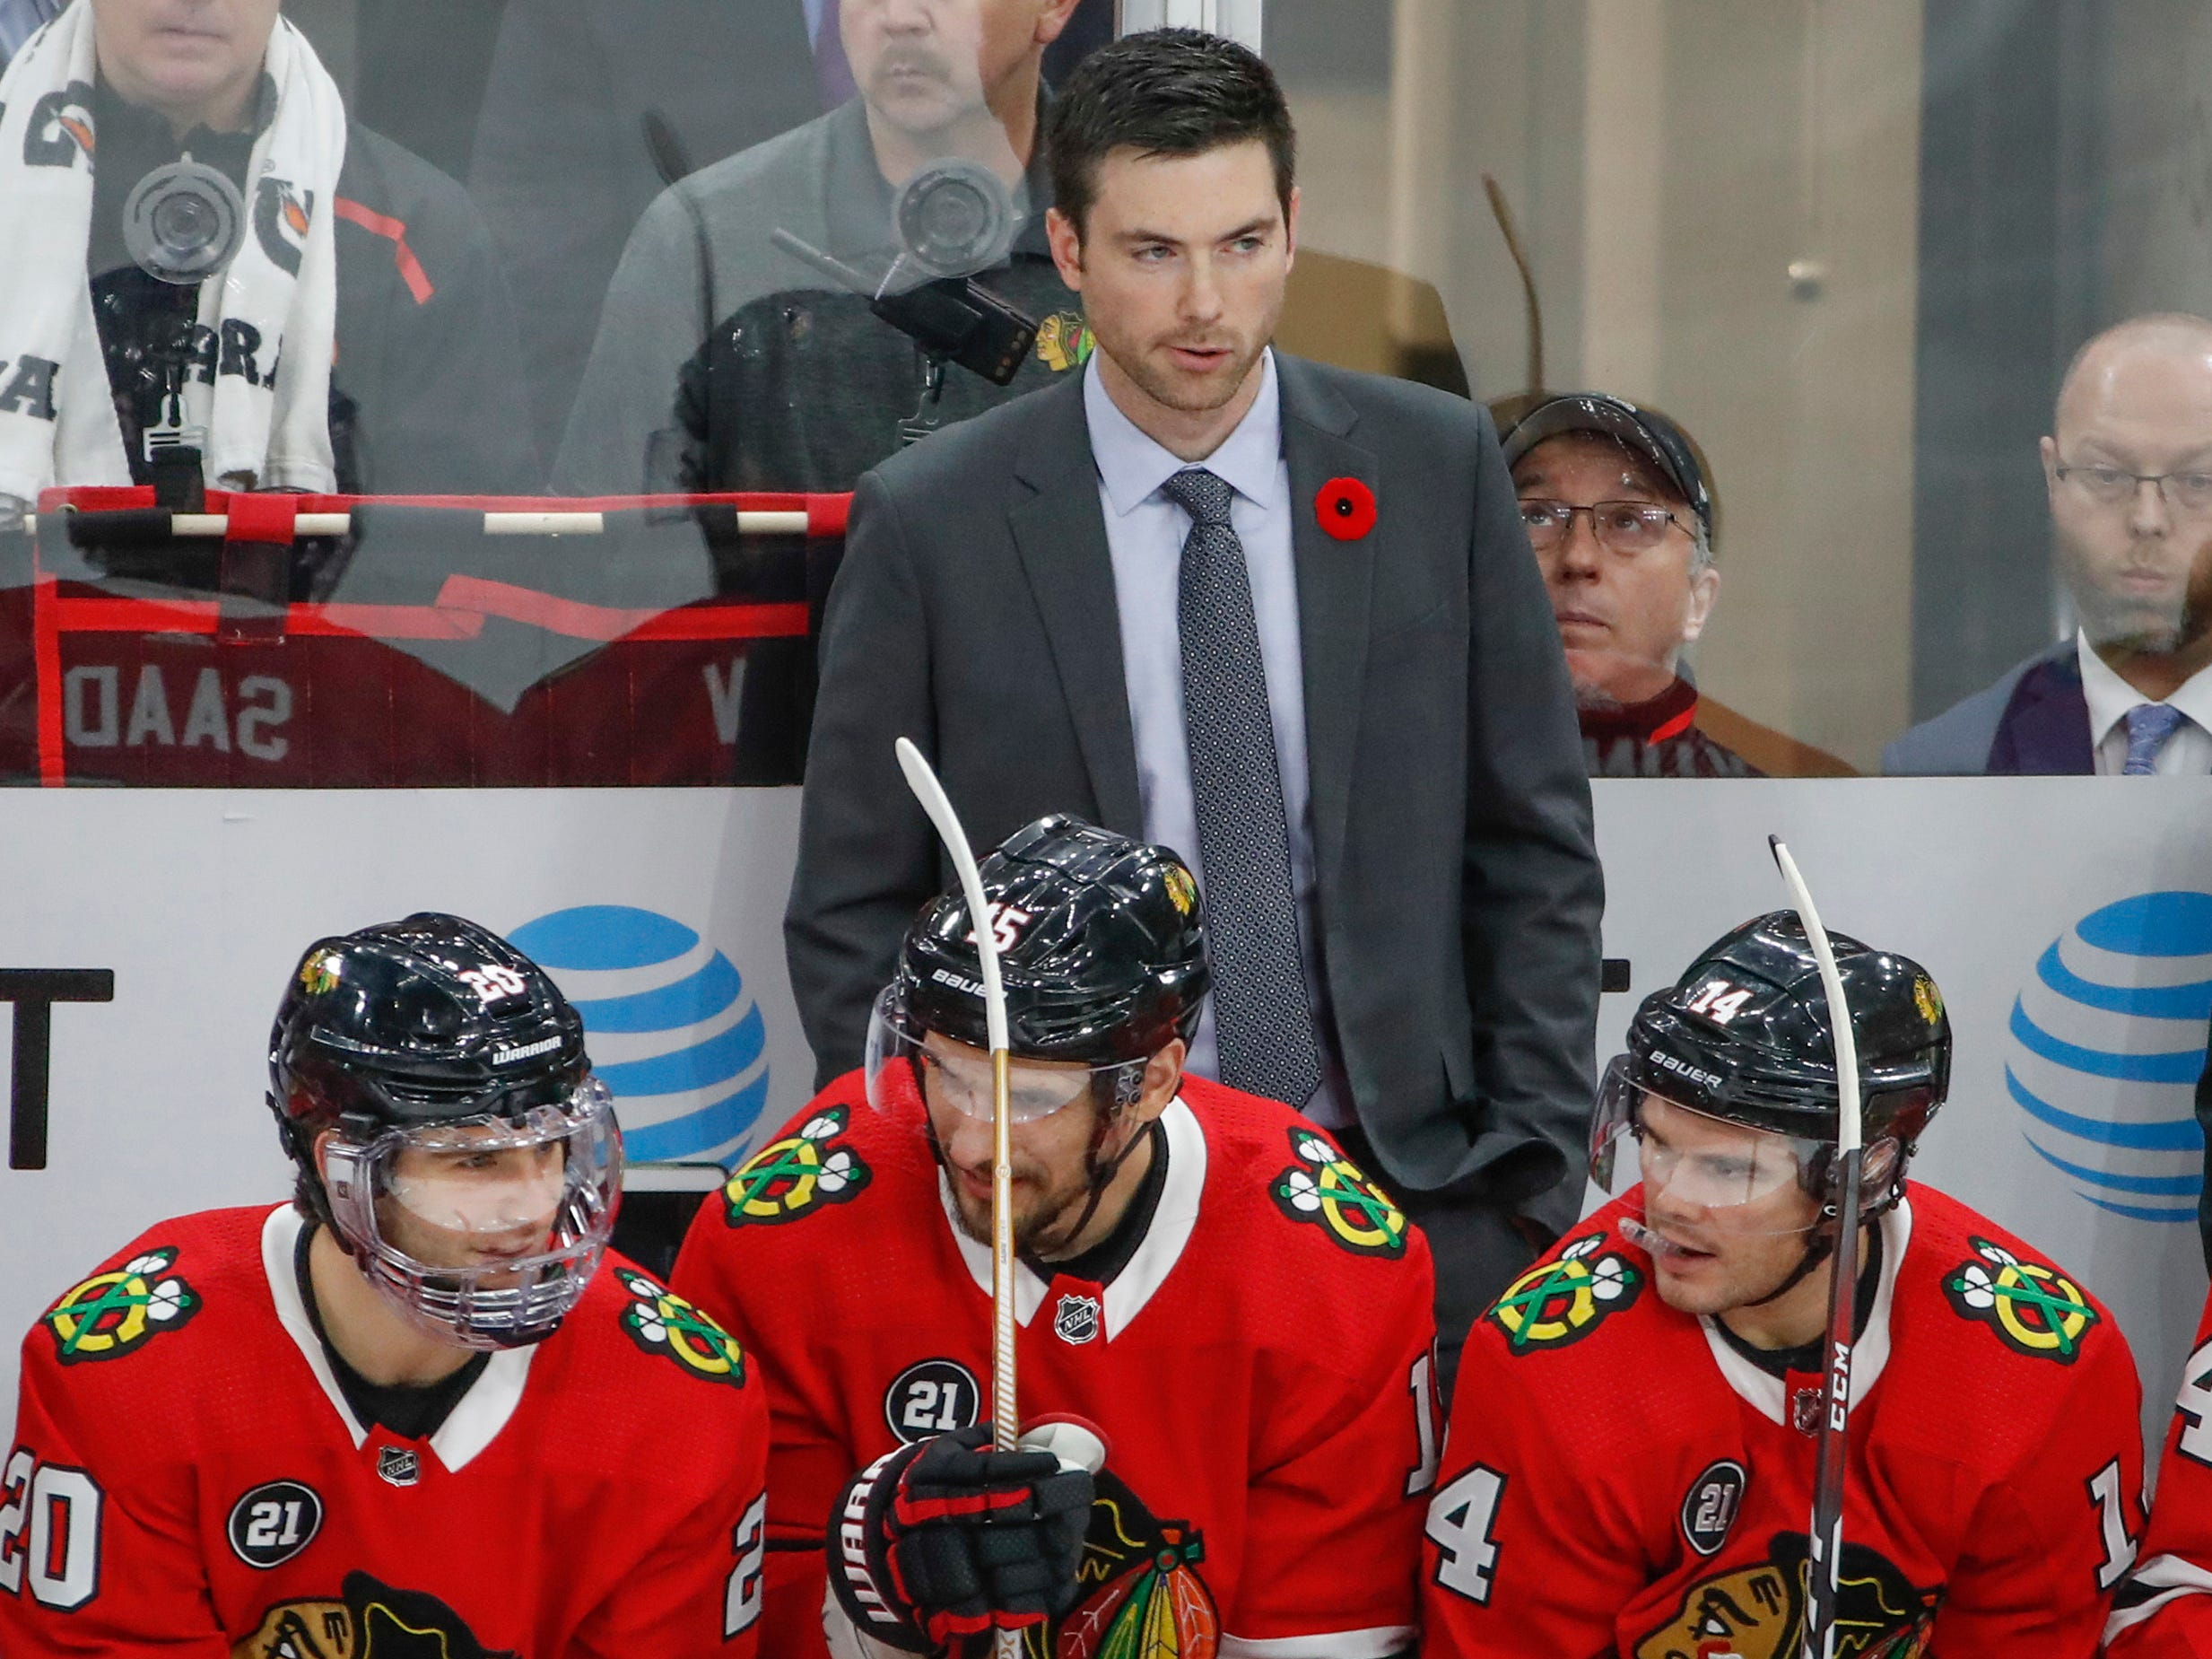 Nov. 8: Chicago Blackhawks head coach Jeremy Colliton makes his debut against the Carolina Hurricanes. His team fell behind 4-0 and lost 4-3.